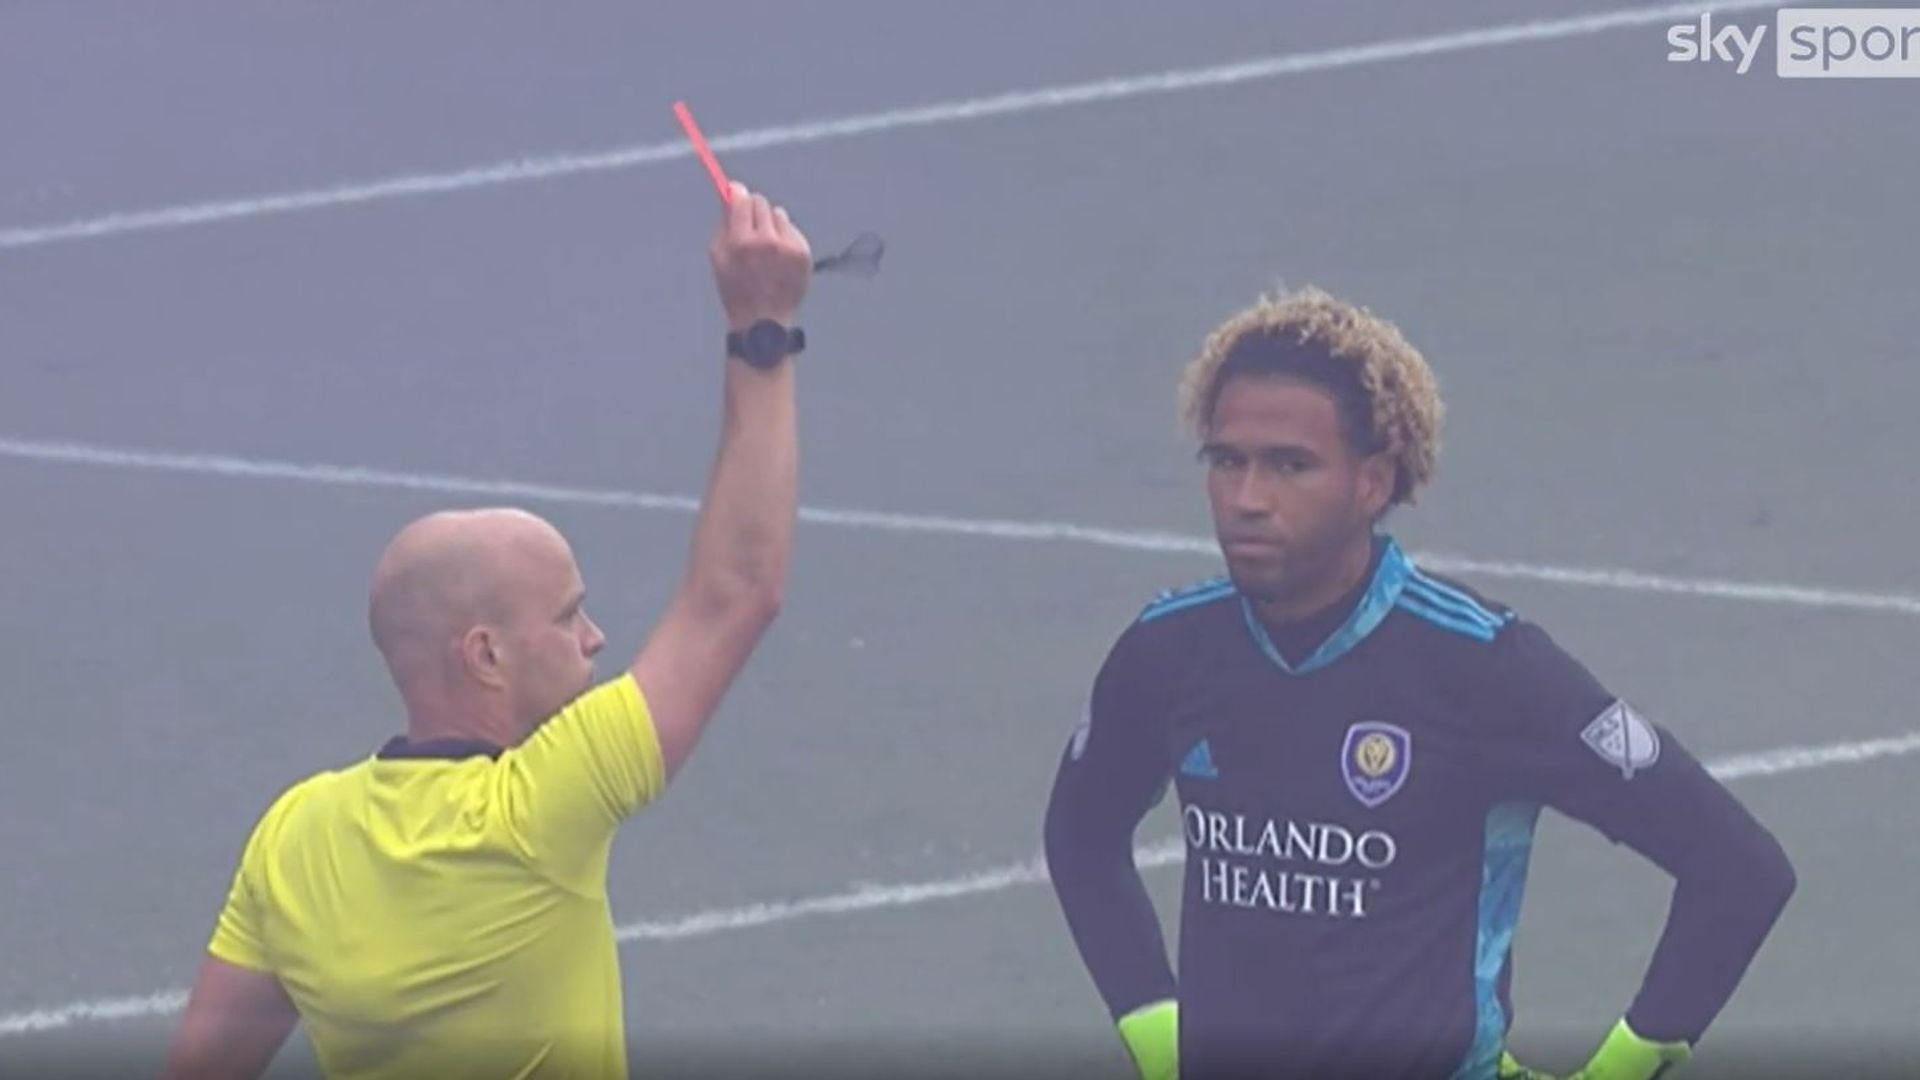 Reds, subs & a defender in goal: Most chaotic shootout ever?